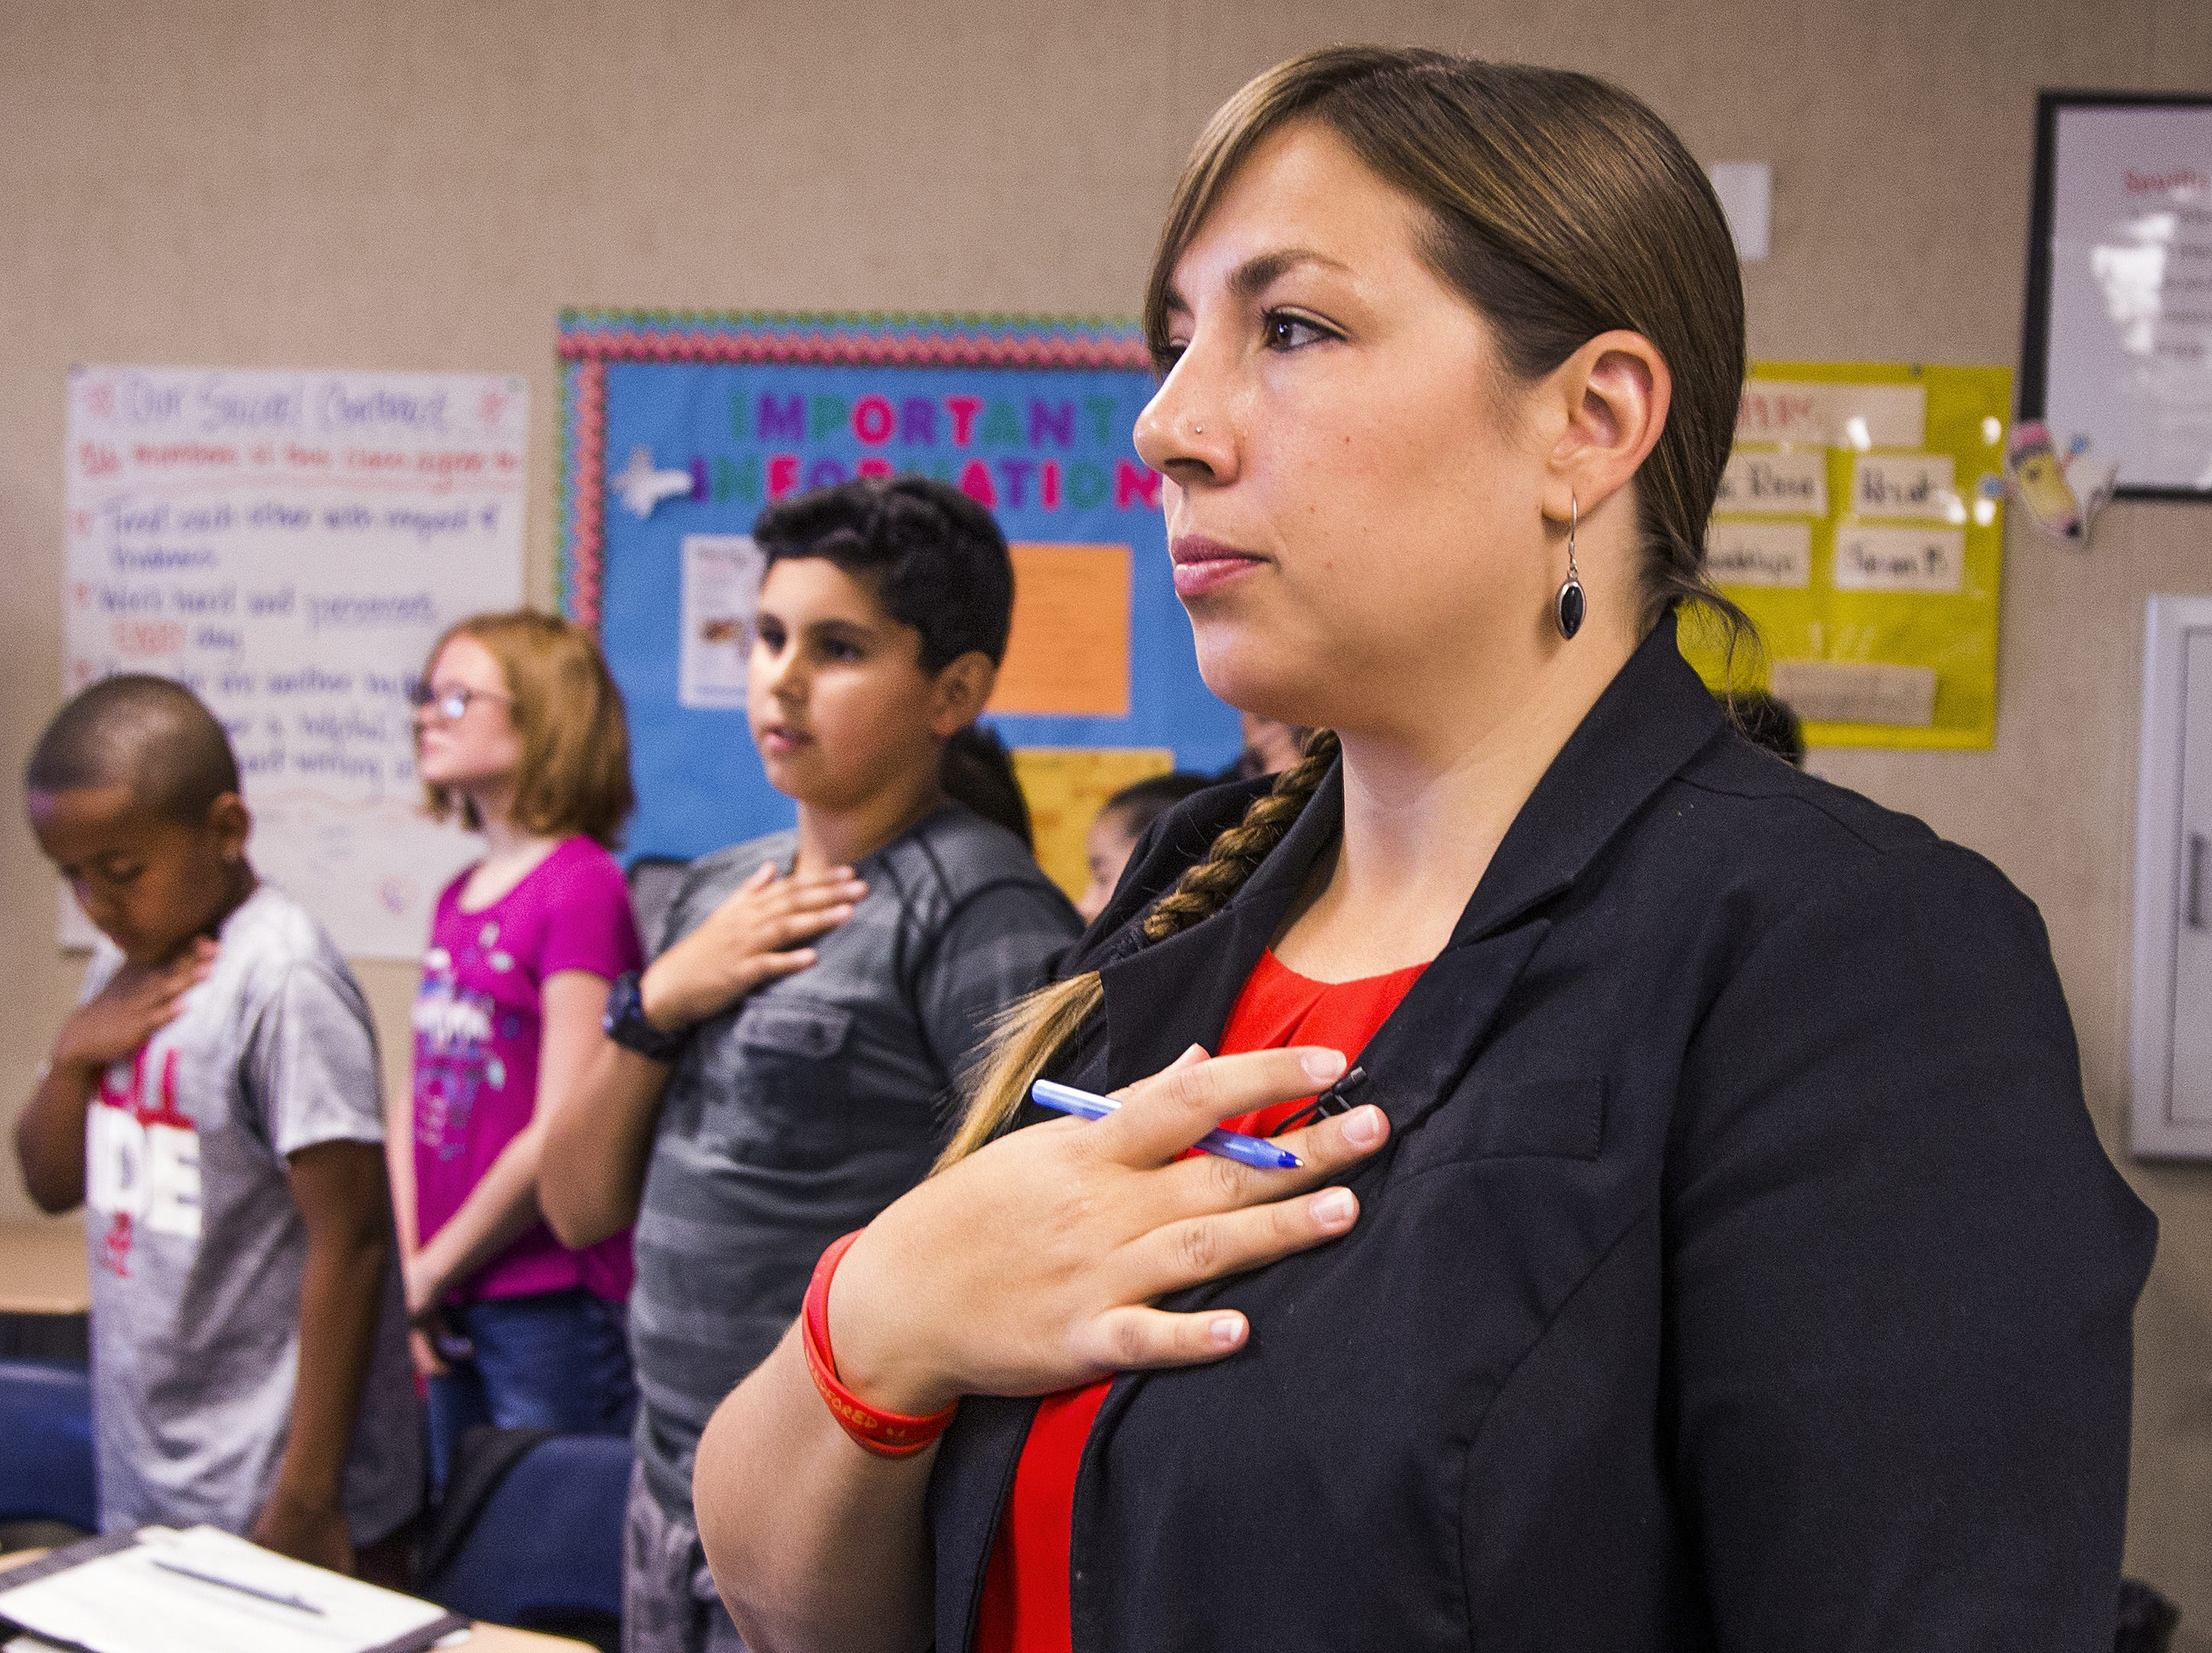 Rebecca Garelli holds her hand over her heart during the Pledge of Allegiance before her 6th grade science class at Sevilla West Elementary School in Phoenix, at 8:47 am, Monday, September 17, 2018. Garelli has been one of the leaders of the #RedforEd movement, demanding increased funding for education in Arizona.